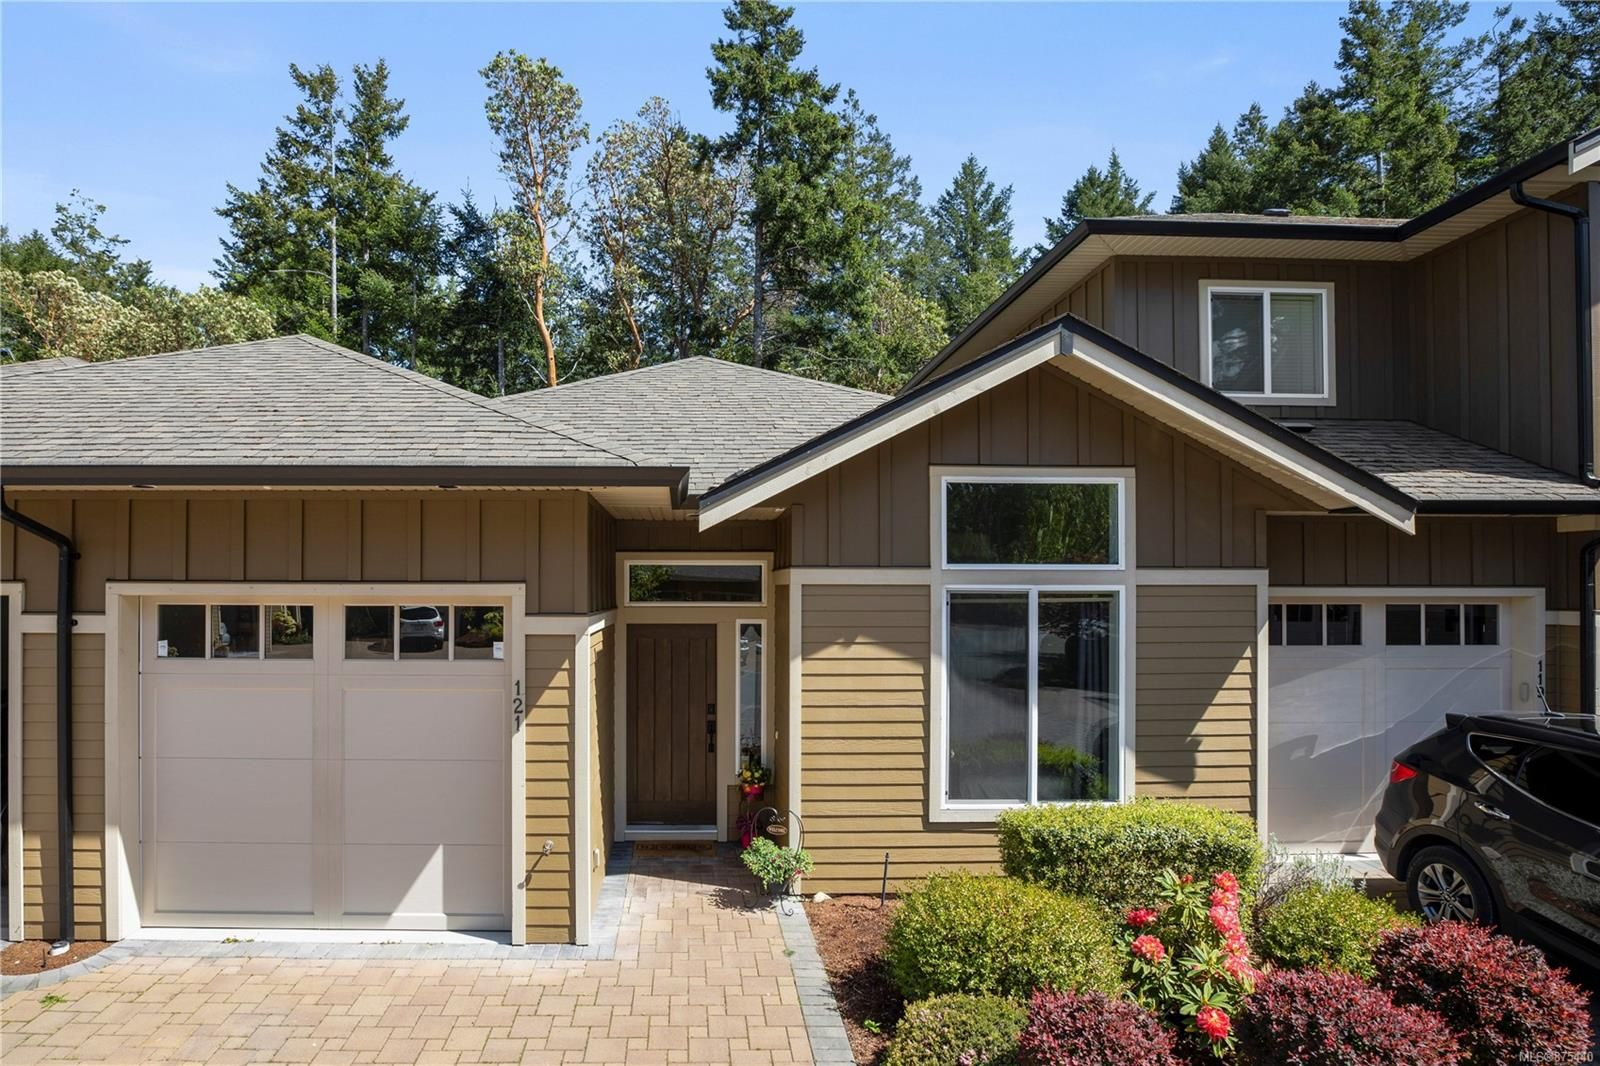 Main Photo: 121 3640 Propeller Pl in : Co Royal Bay Row/Townhouse for sale (Colwood)  : MLS®# 875440